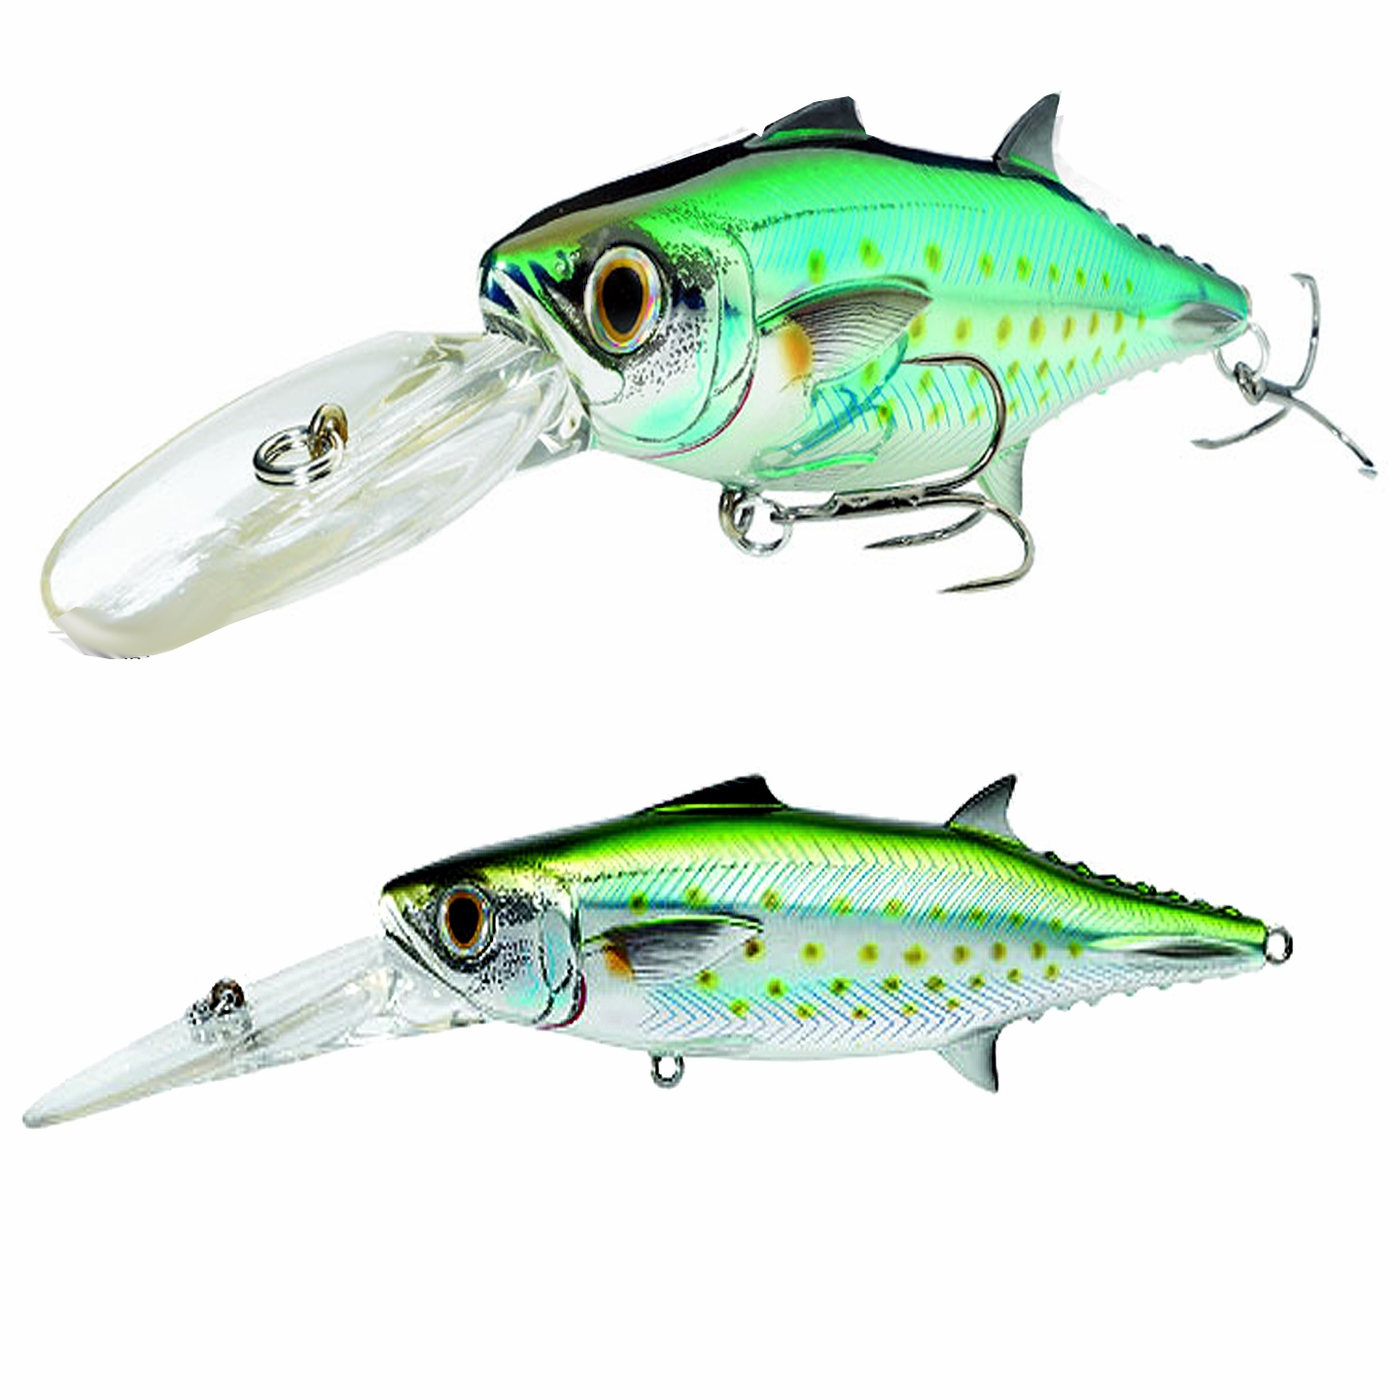 Livetarget spanish mackerel trolling bait lures tackledirect for Ocean fishing gear